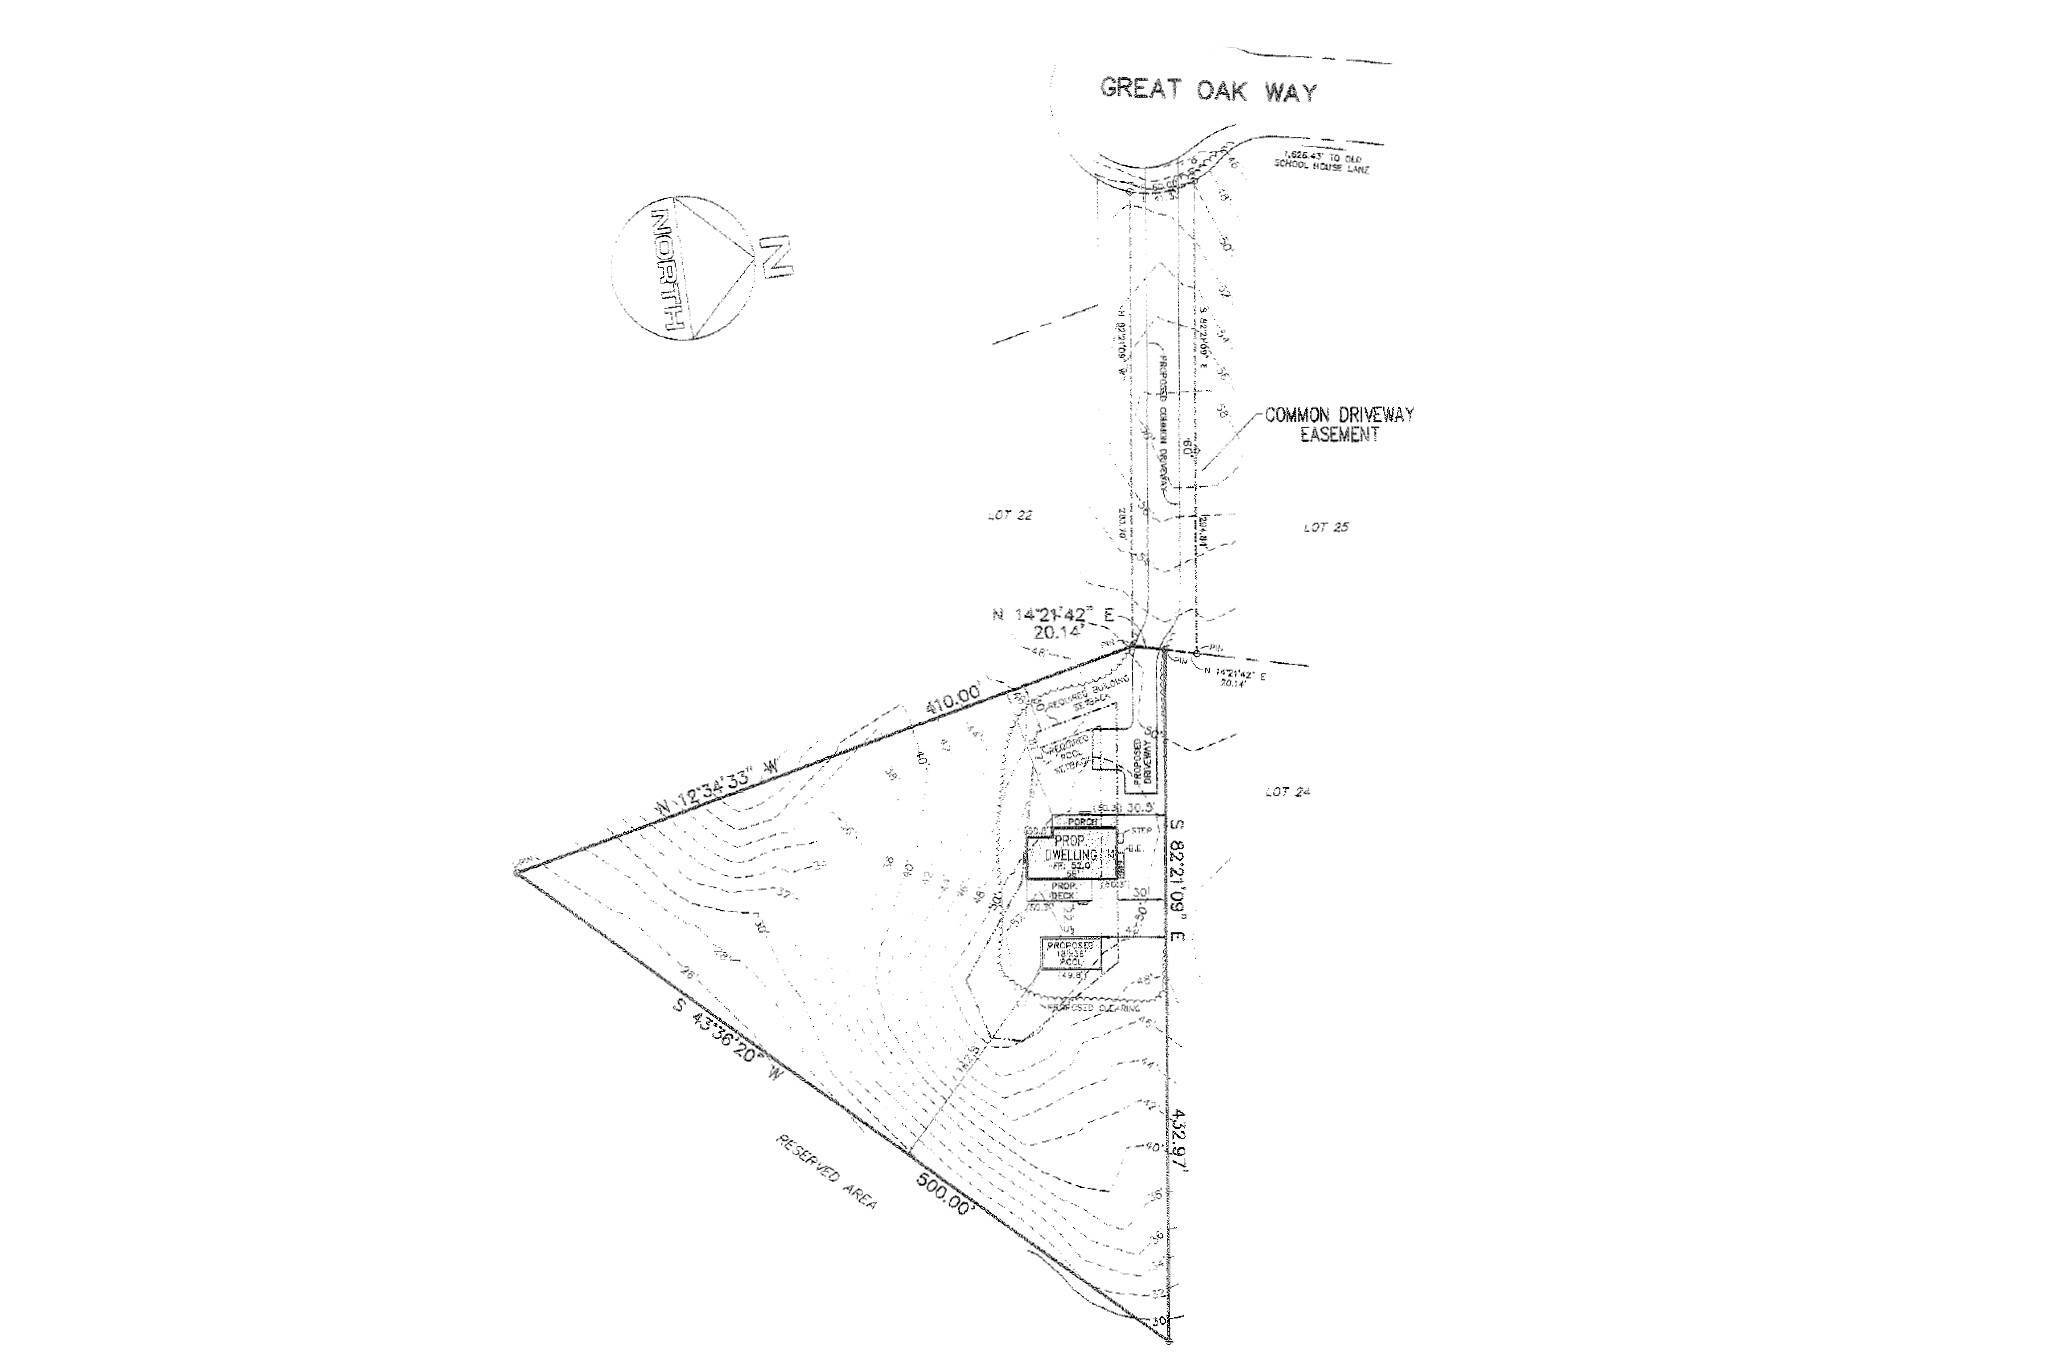 Land for Sale at East Hampton Northwest Land 2+ Acres 21 Great Oak Way, East Hampton, East Hampton Town, NY 11937